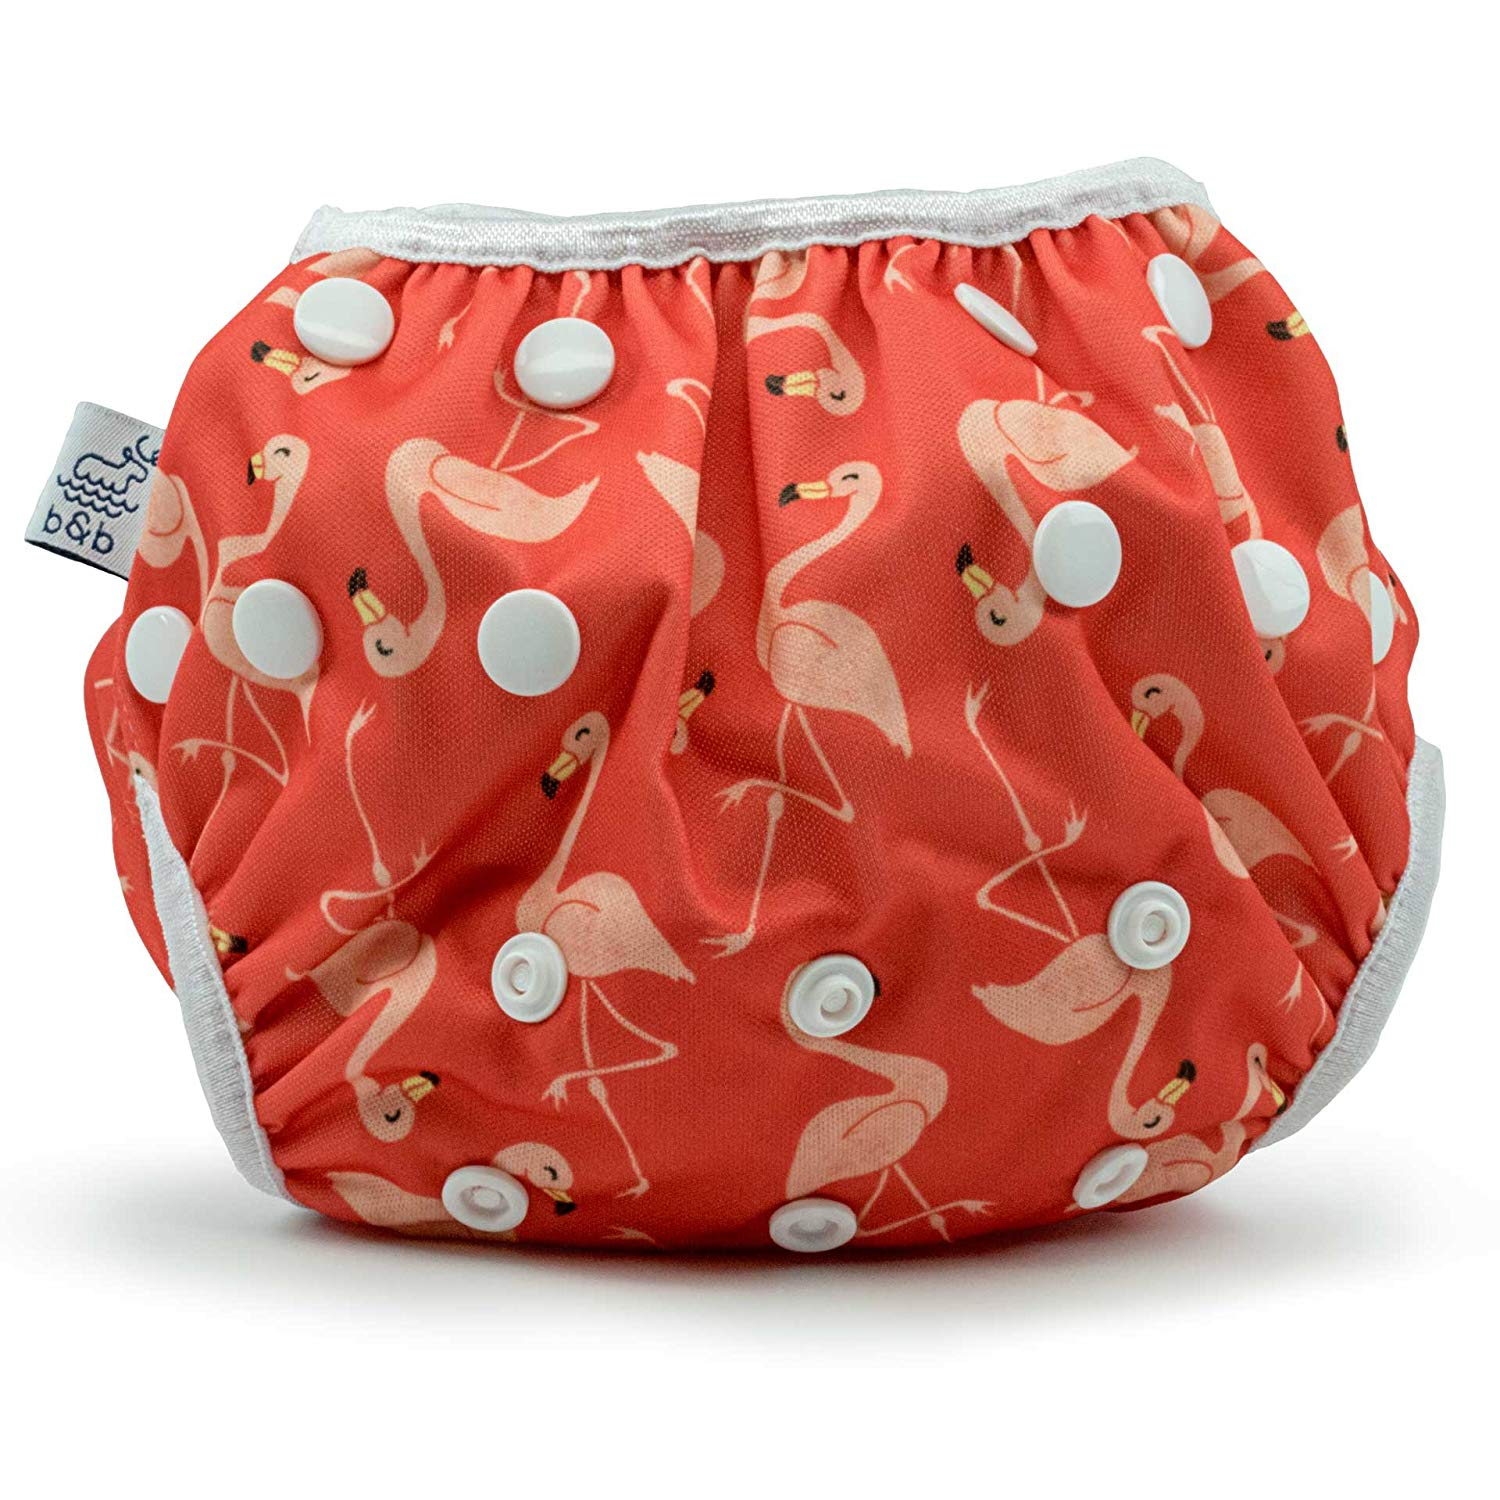 10 Best Baby Swim Diapers of 2019